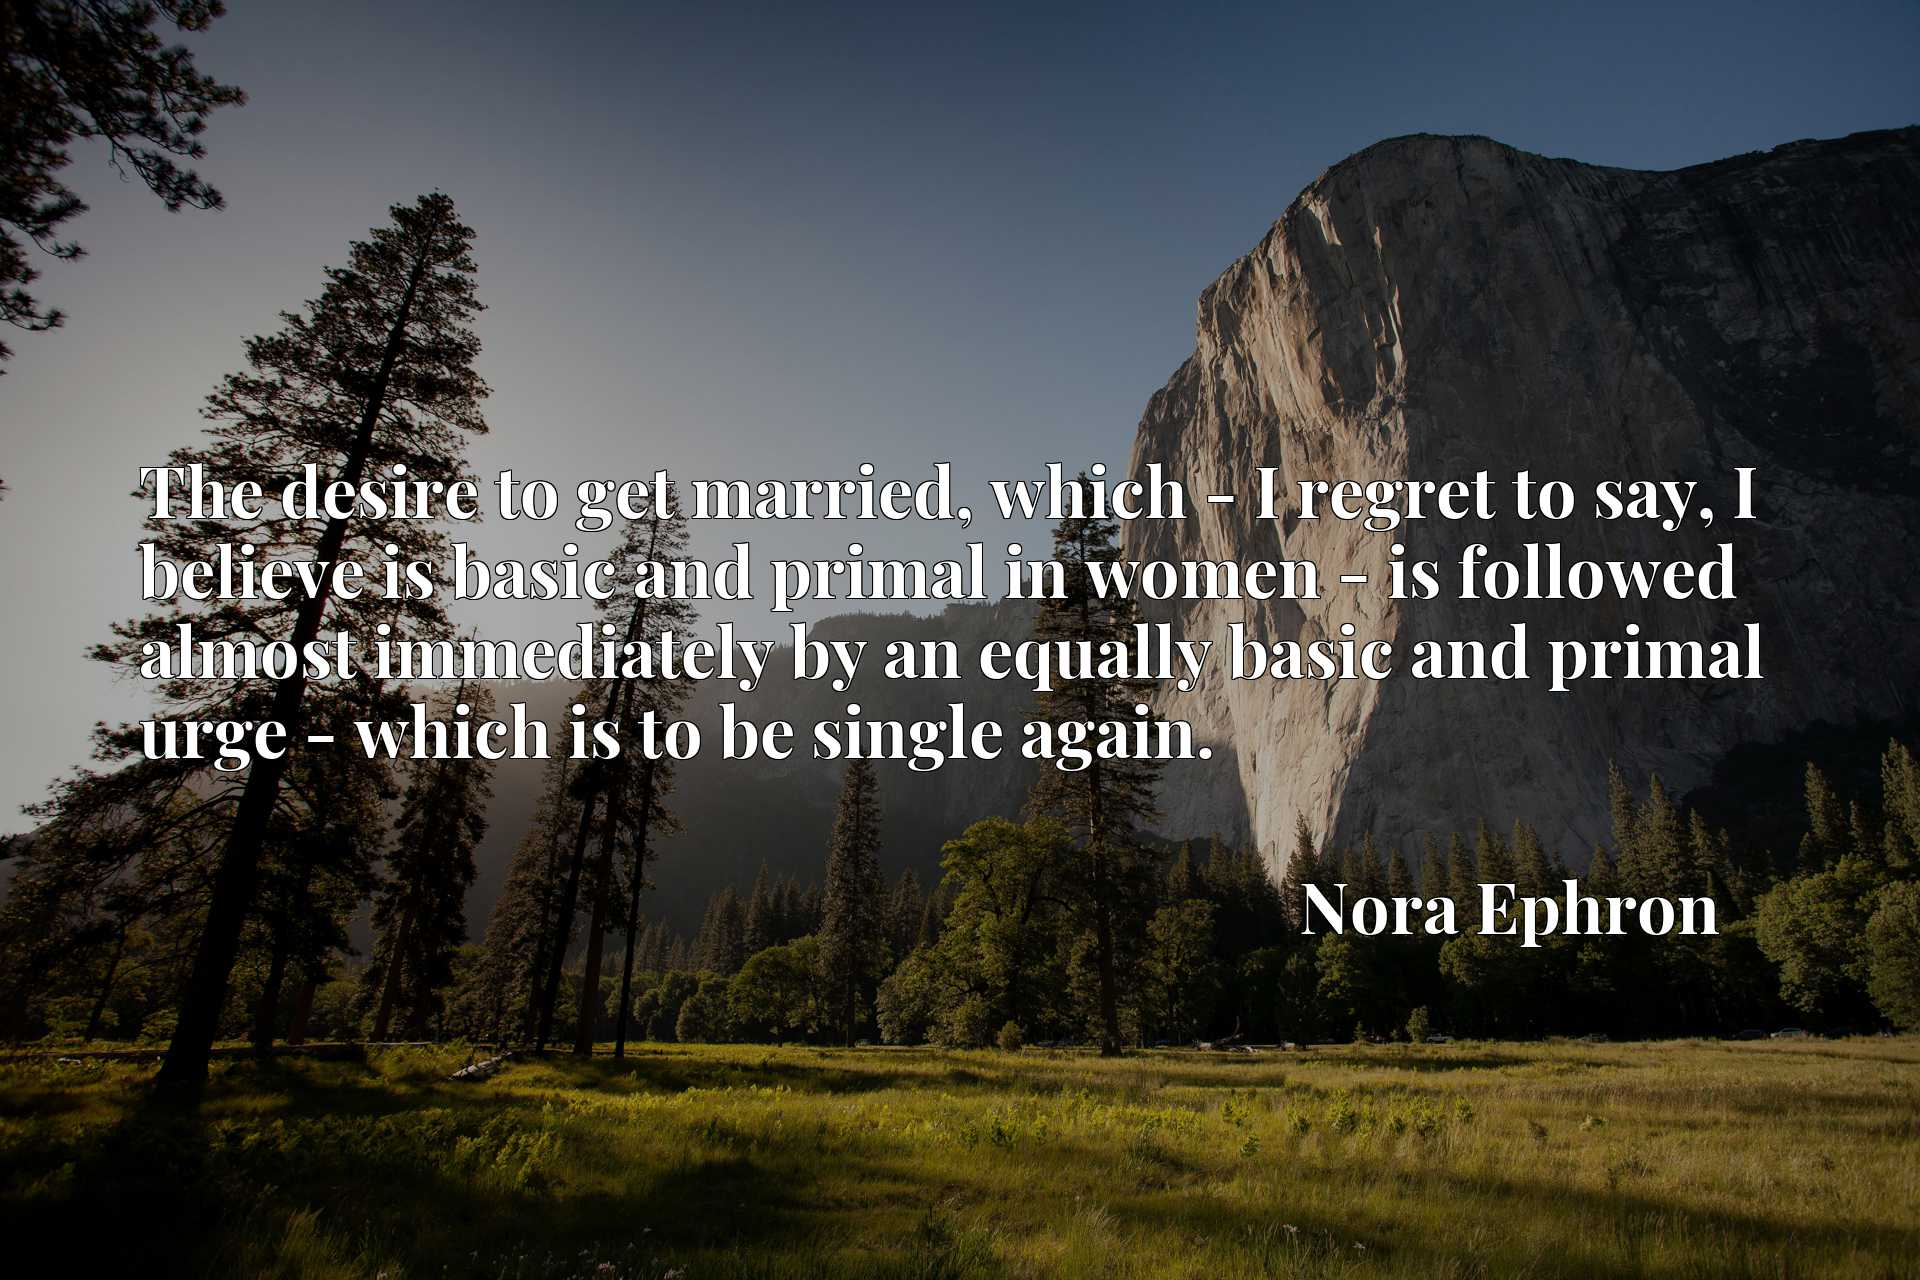 The desire to get married, which - I regret to say, I believe is basic and primal in women - is followed almost immediately by an equally basic and primal urge - which is to be single again.